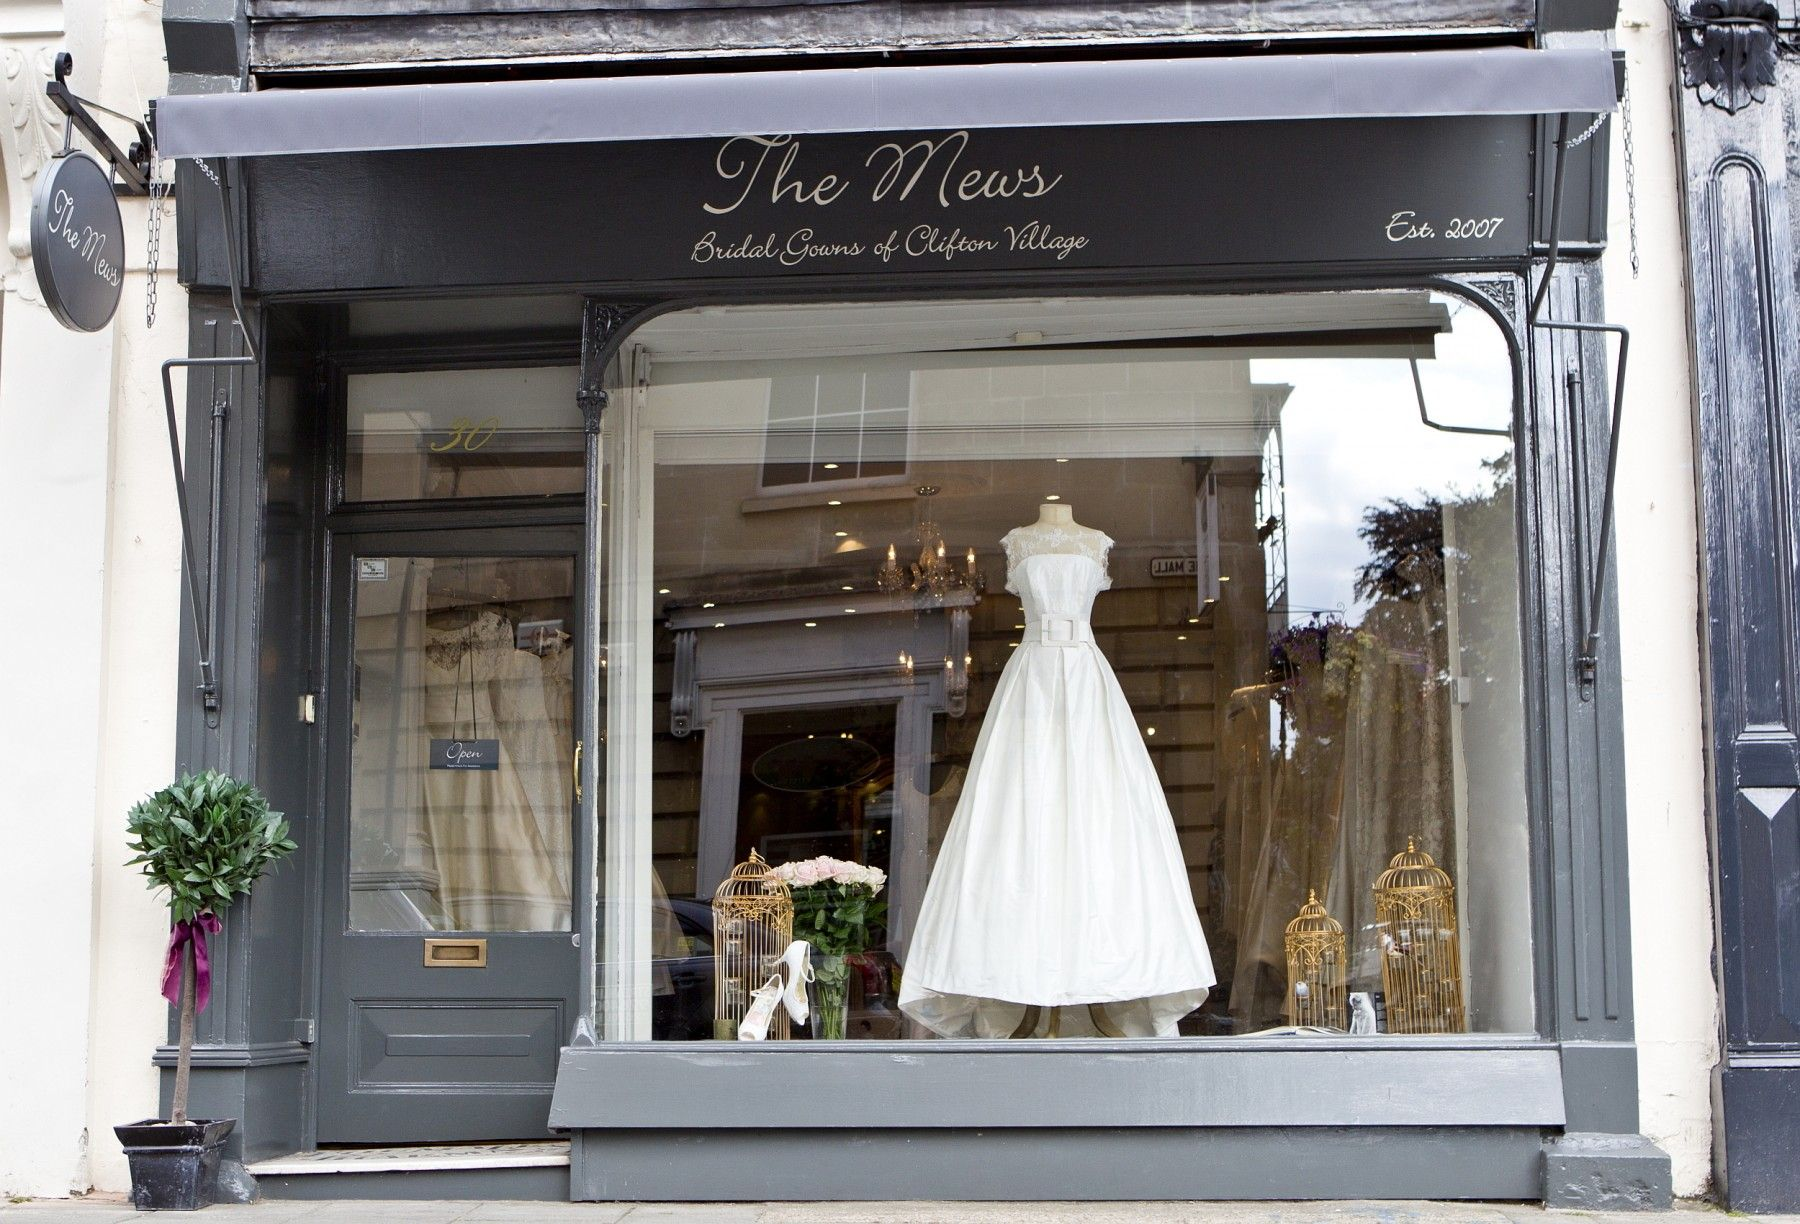 Mirror mirror london north london wedding mirror mirror north mirror mirror london north london wedding mirror mirror north london wedding dress marie wedding pinterest bridal boutique wedding dress and ombrellifo Image collections